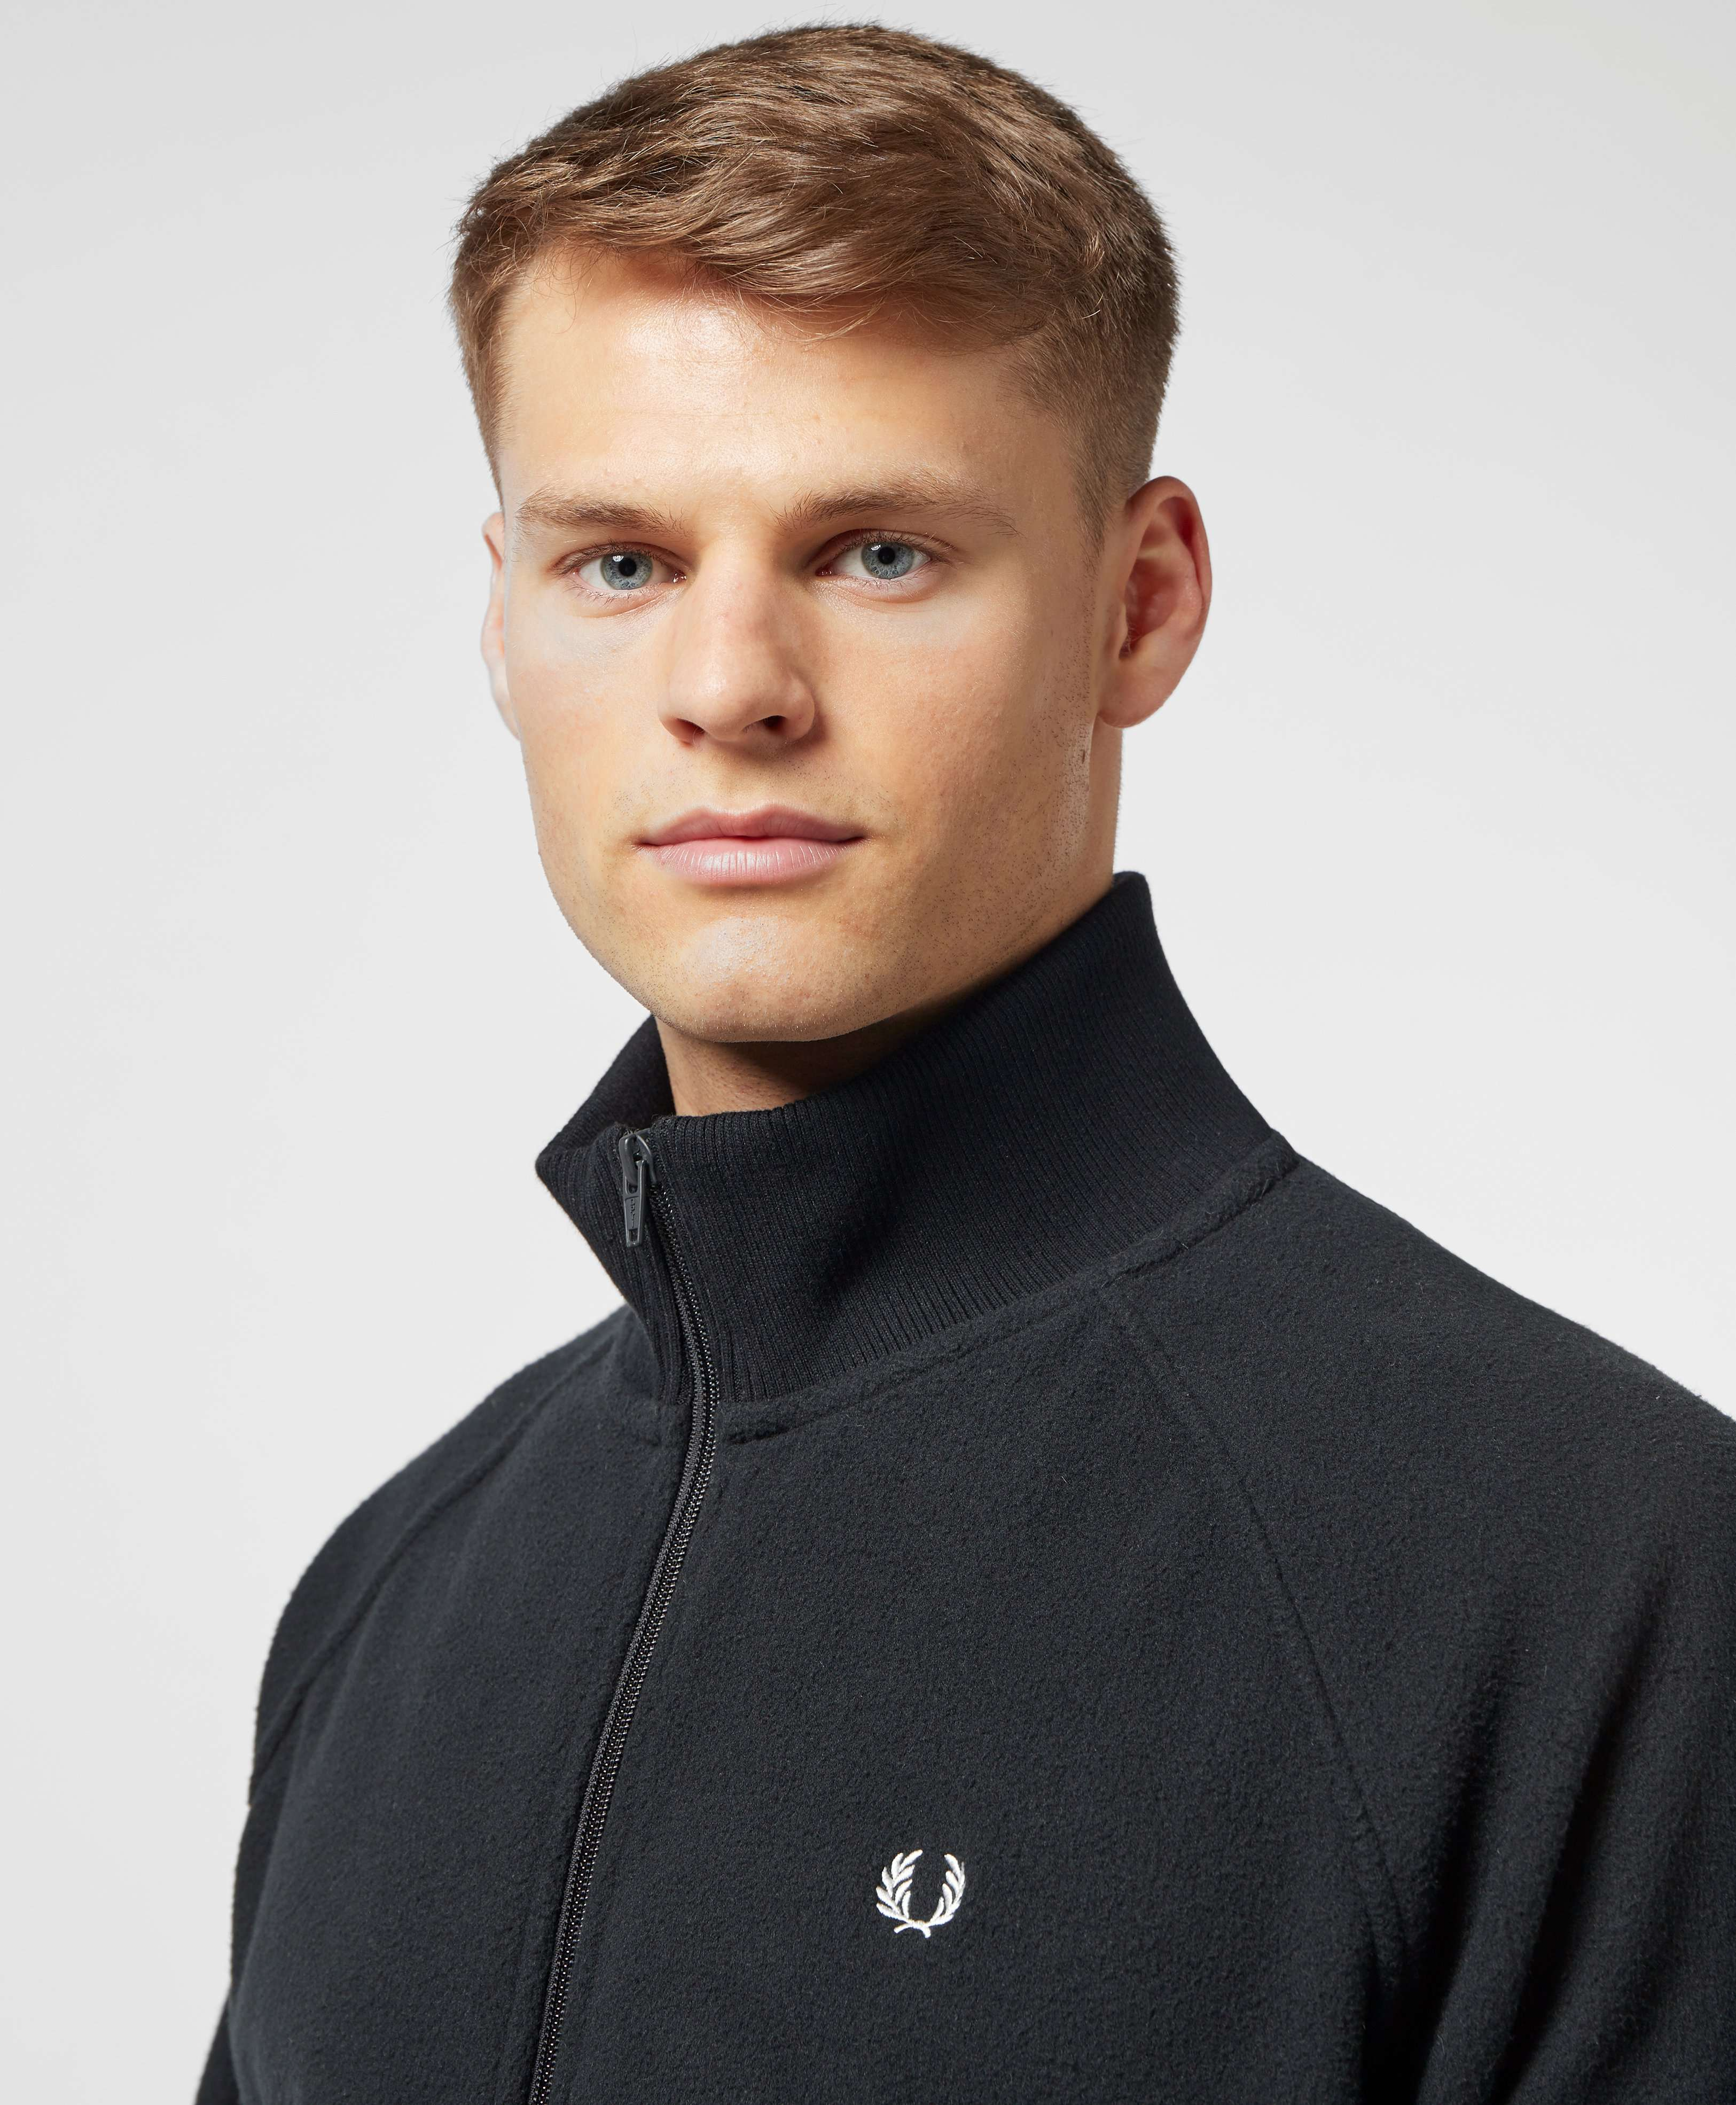 Fred Perry Polar Fleece Full Zip Track Top